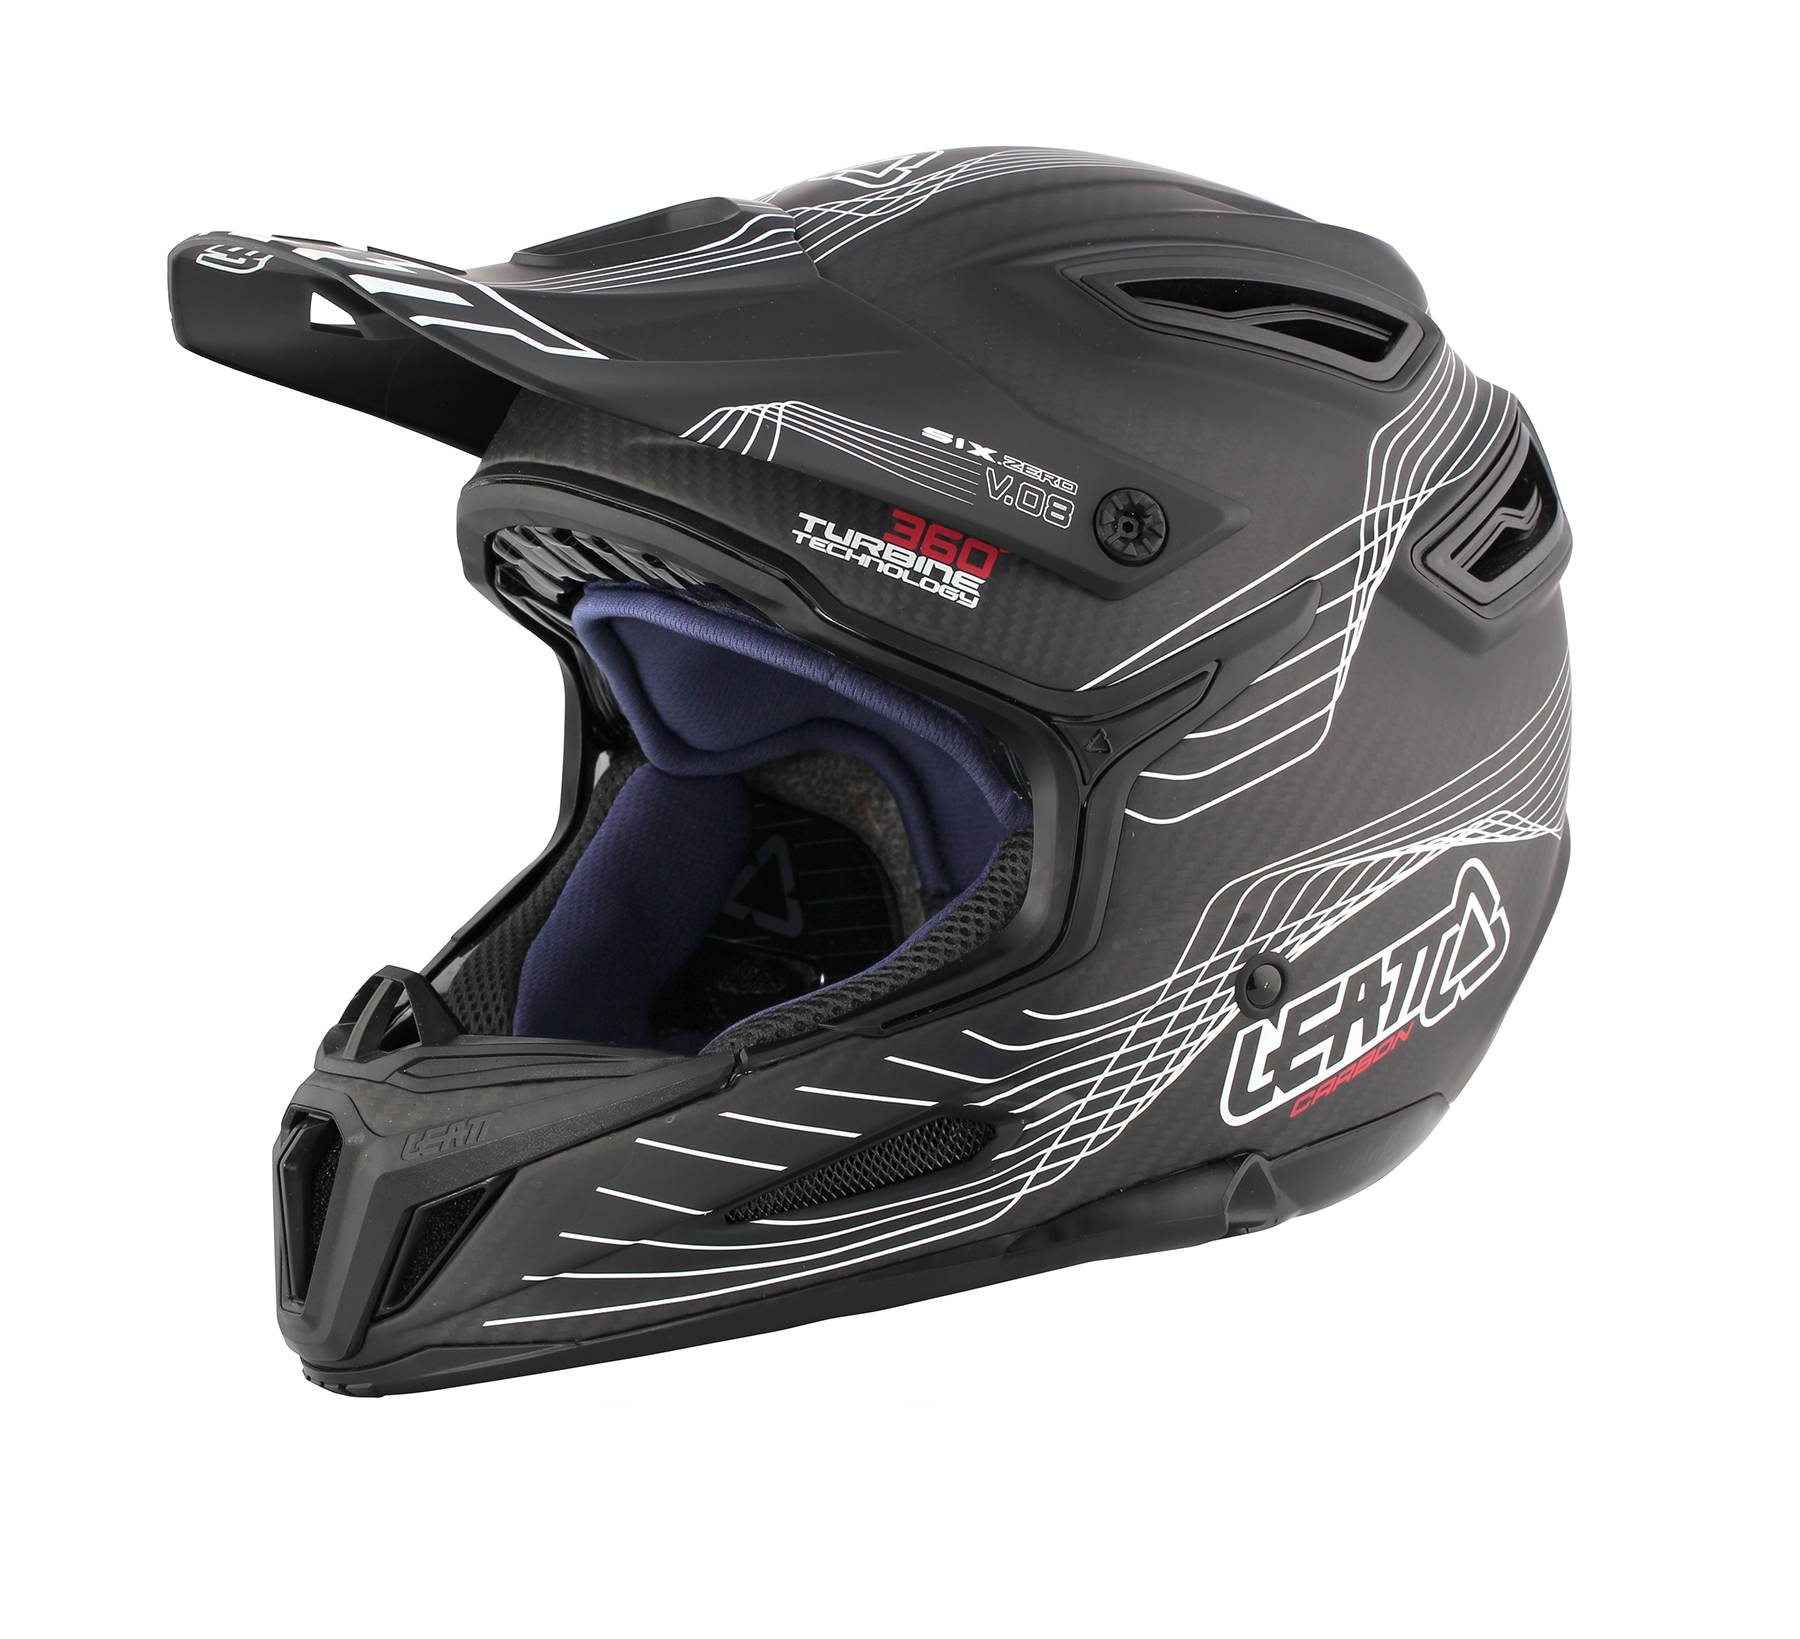 Helmet DBX 6.0 Carbon V08 Carbon White Red Side 2